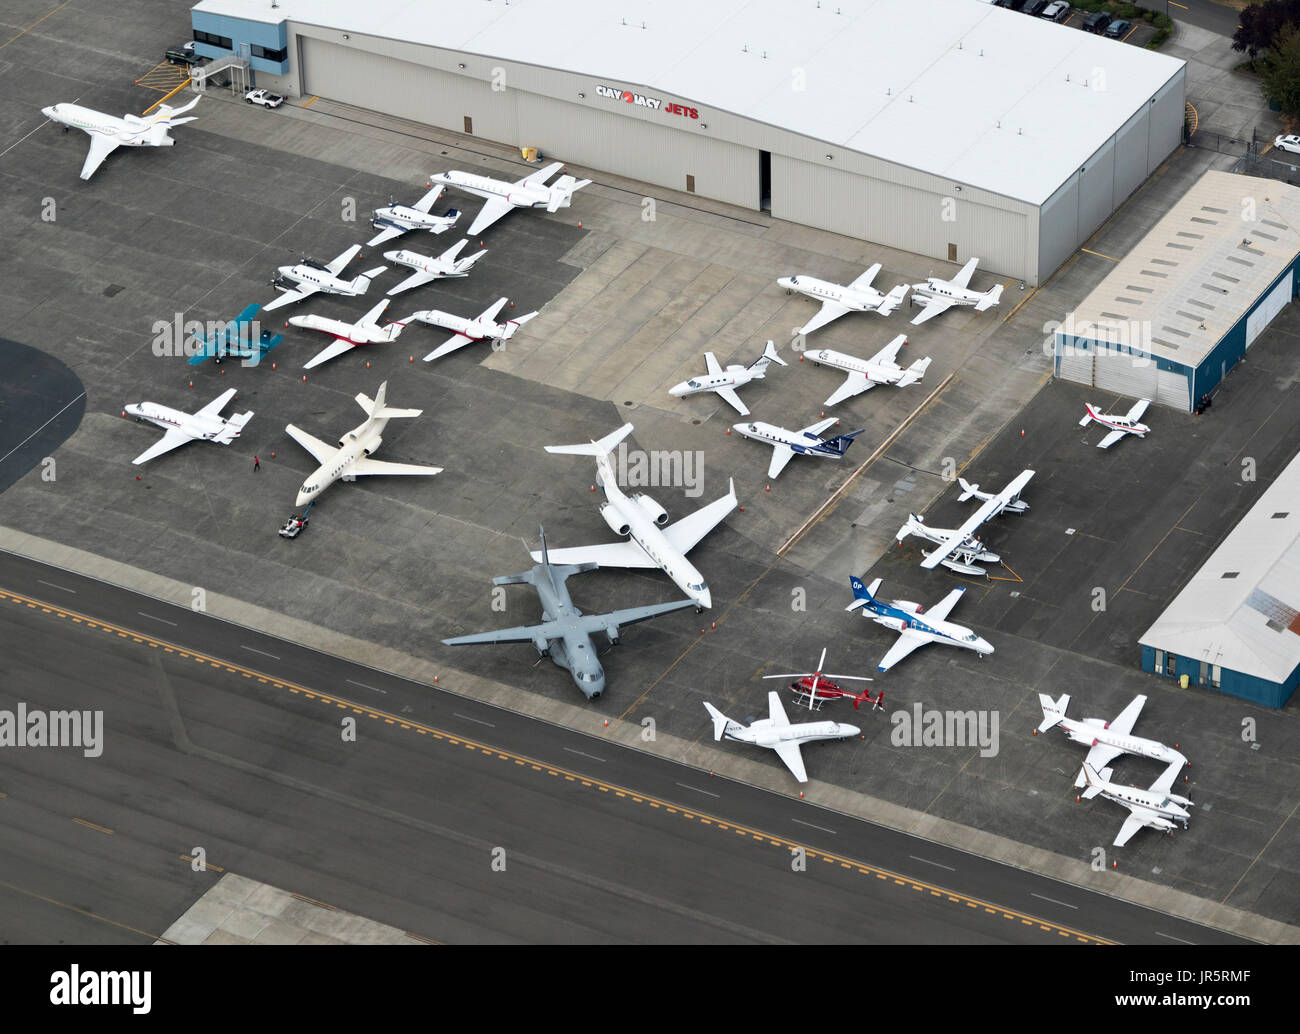 aerial view of private jets outside Clay Lacy Aviation hangar, Boeing Field, Seattle, Washington State, USA - Stock Image